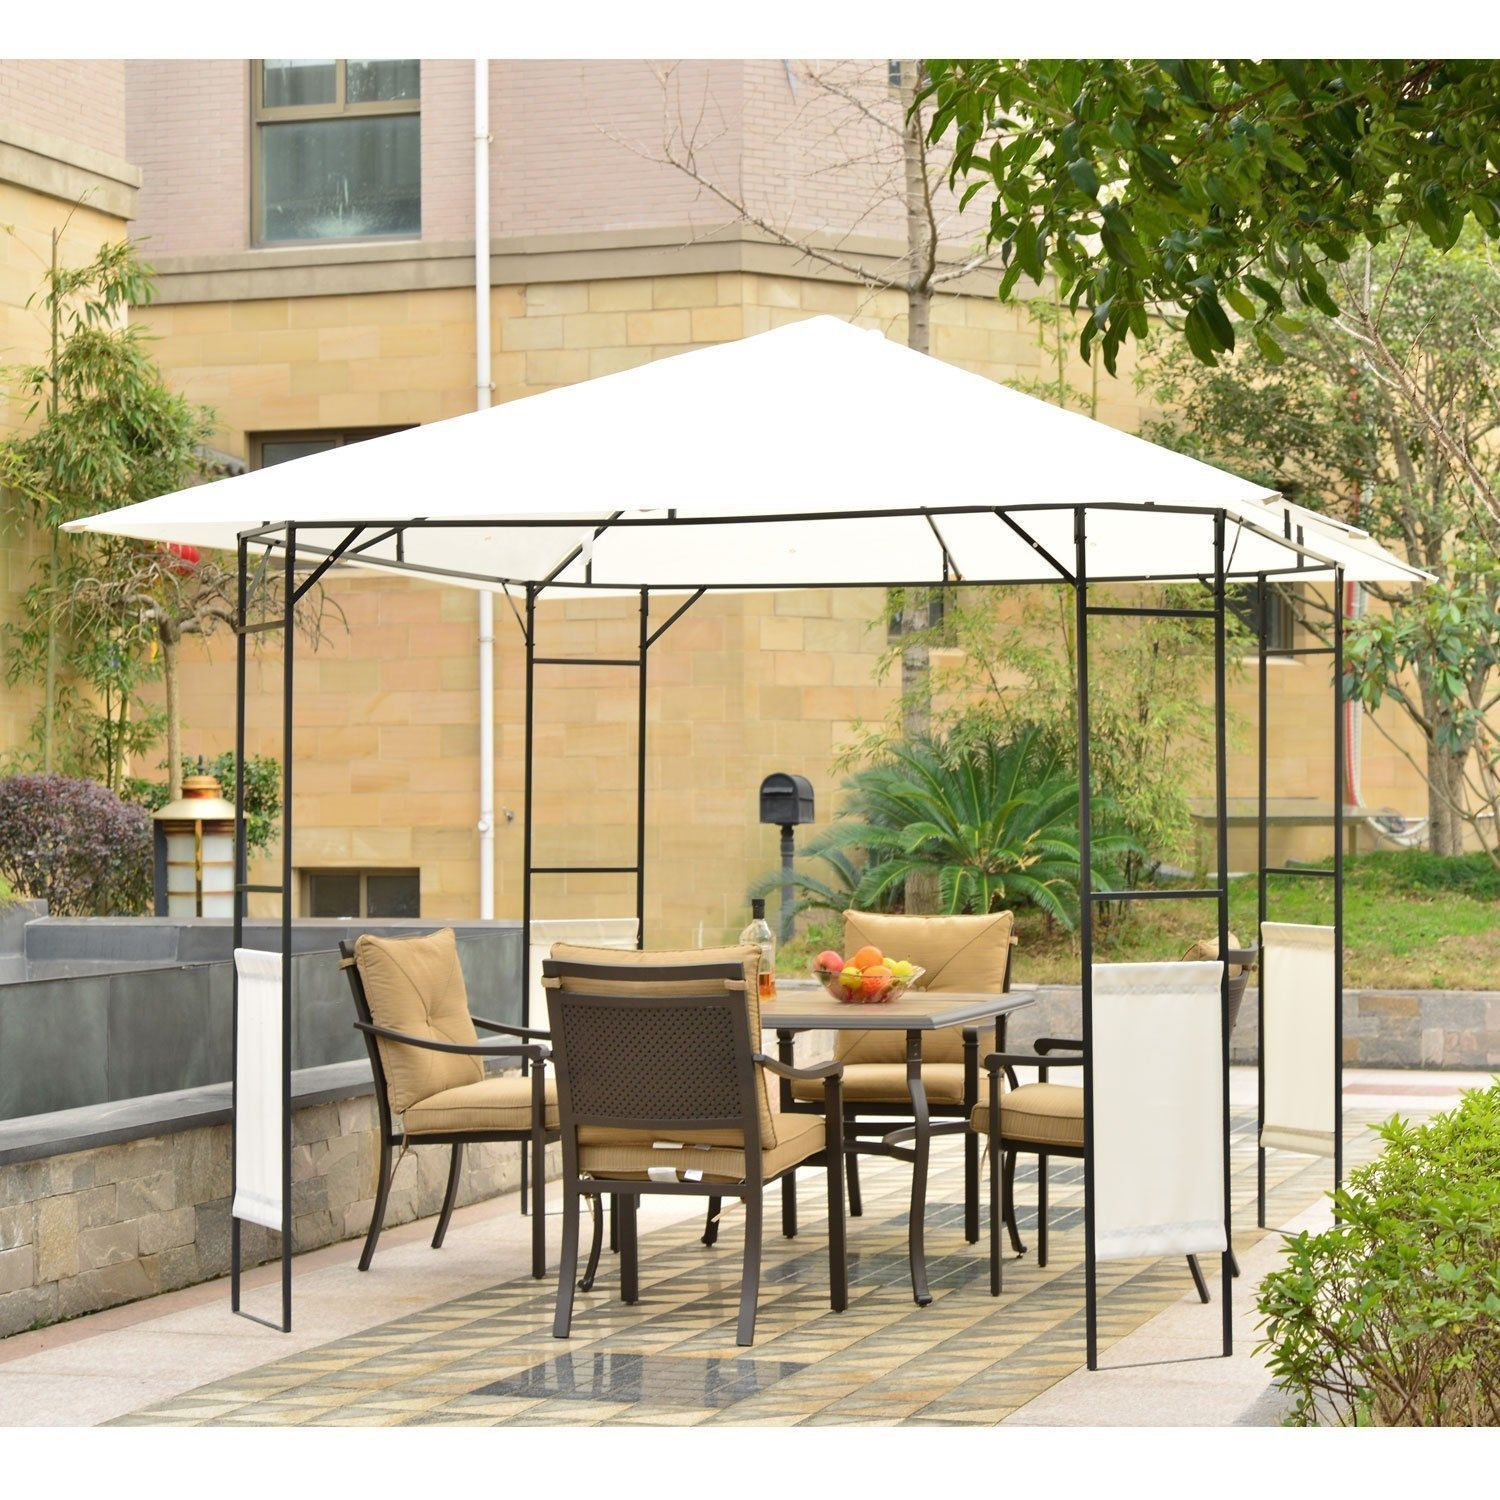 Outsunny Gazebo 10 x 10 Pop Up Folding Patio Canopy Tent Wedding